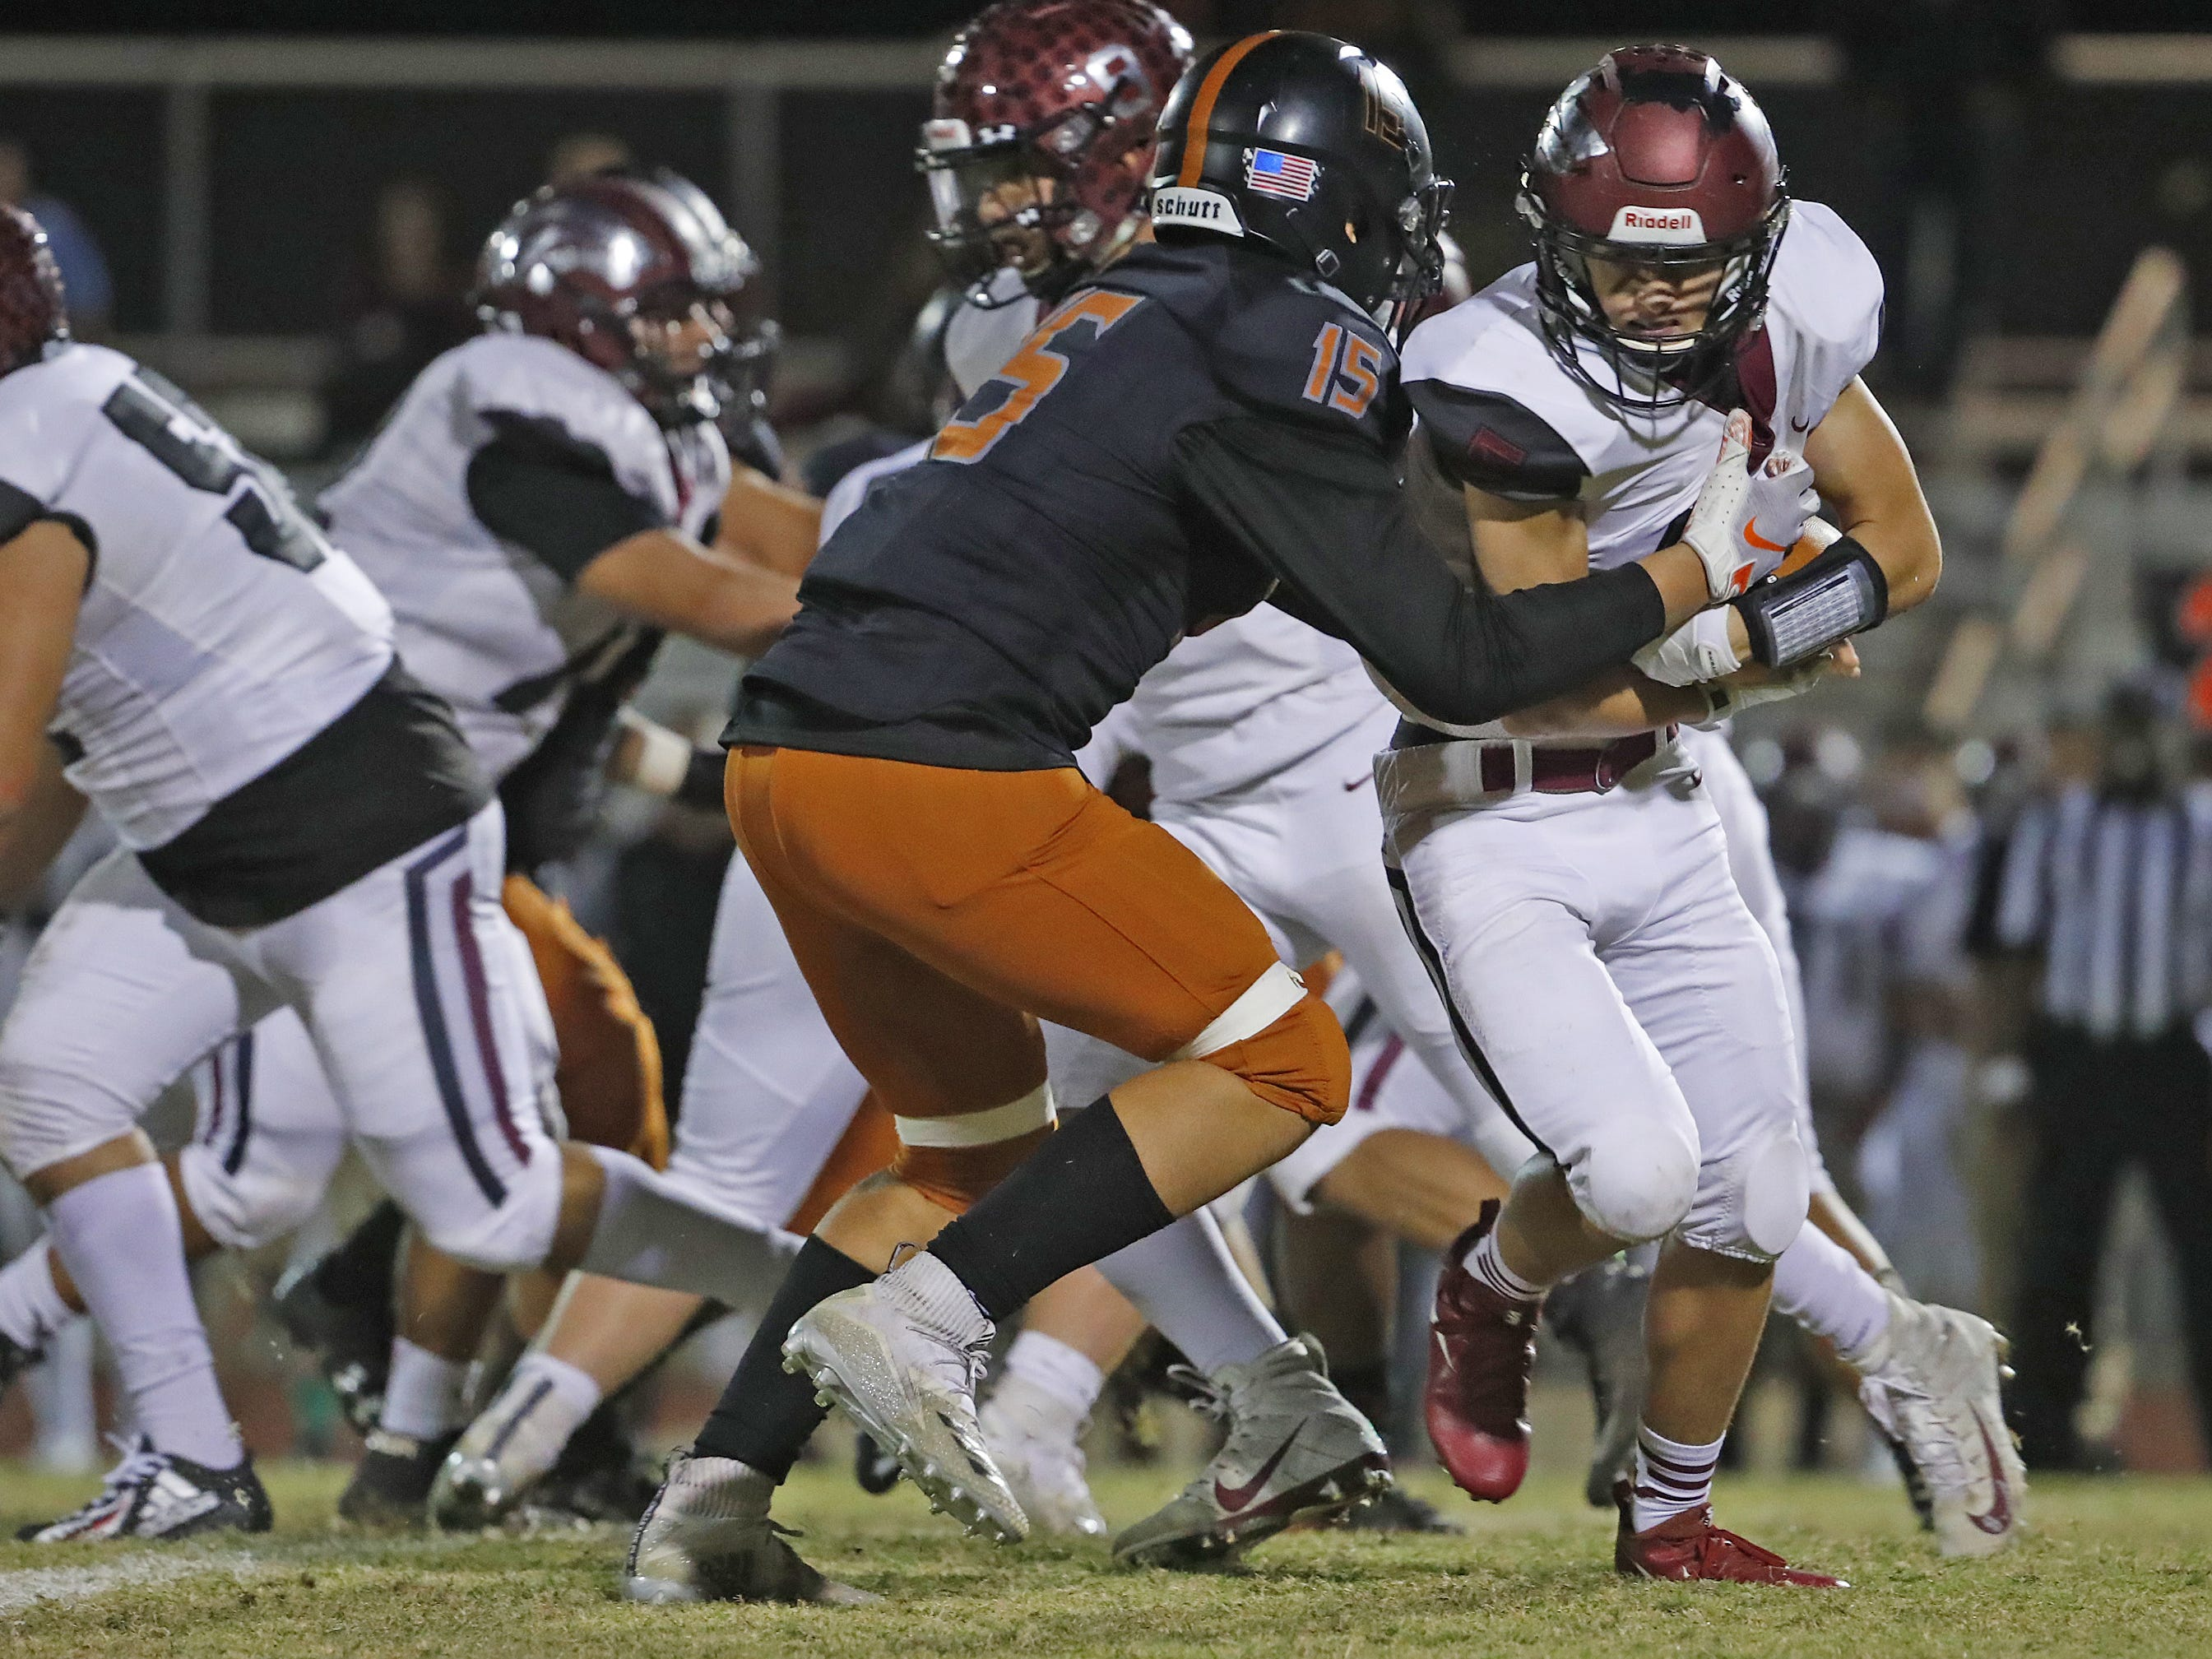 Desert Edge's Cameron Steele (15) tackles Walden Grove's William Fortin (5) during the first round of the AIA State Football Playoffs at Desert Edge High School in Goodyear, Ariz. on Nov. 2, 2018.